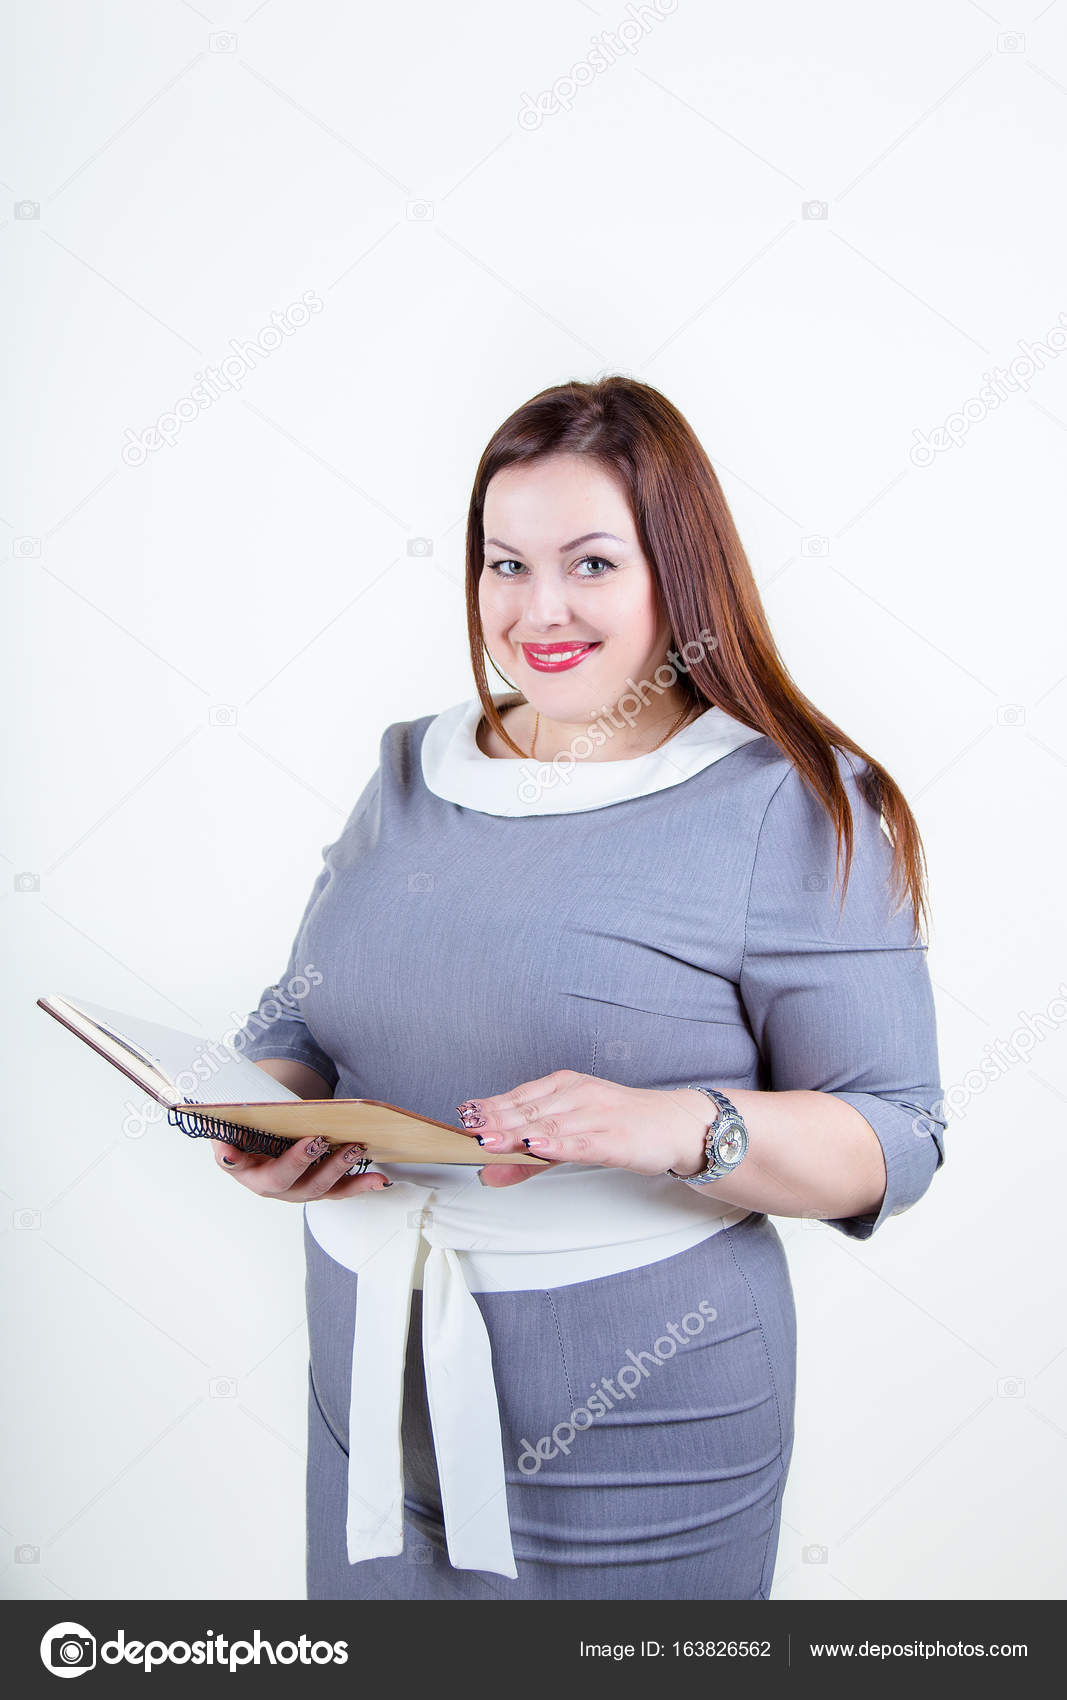 Chubby Plus Size Woman With A Beautiful Smile Stock Image